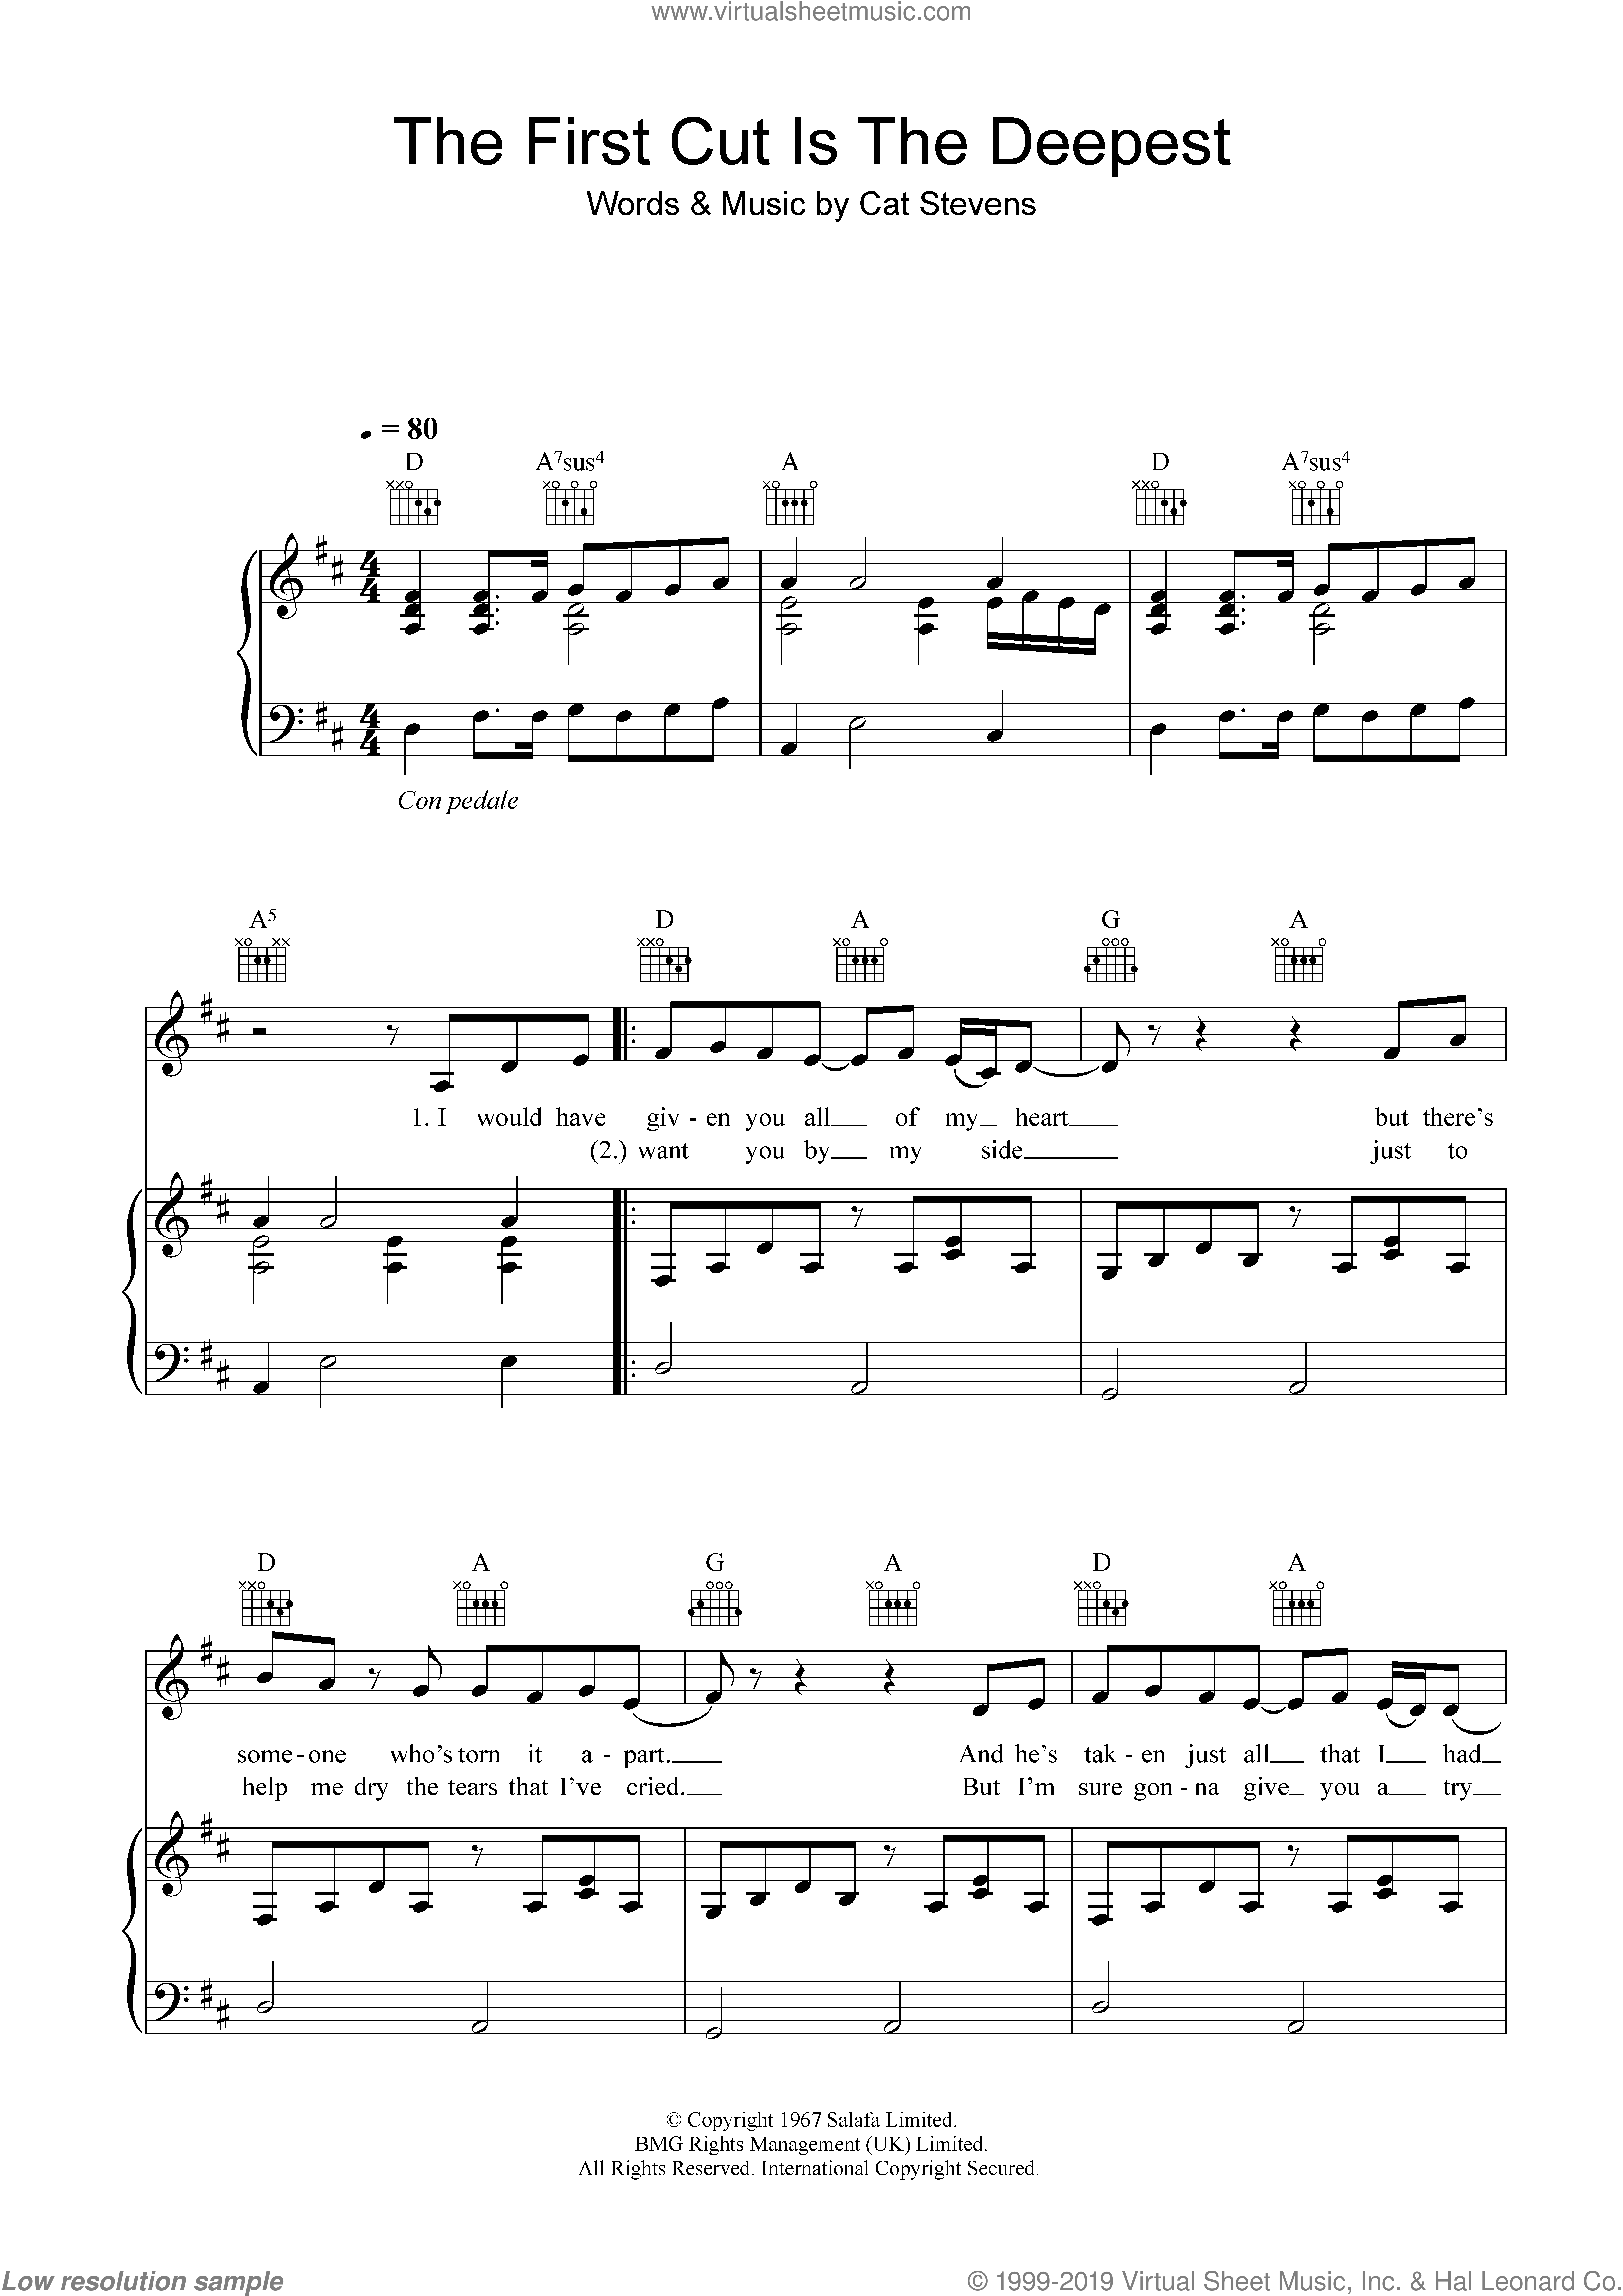 The First Cut Is The Deepest sheet music for voice, piano or guitar by Sheryl Crow, intermediate skill level